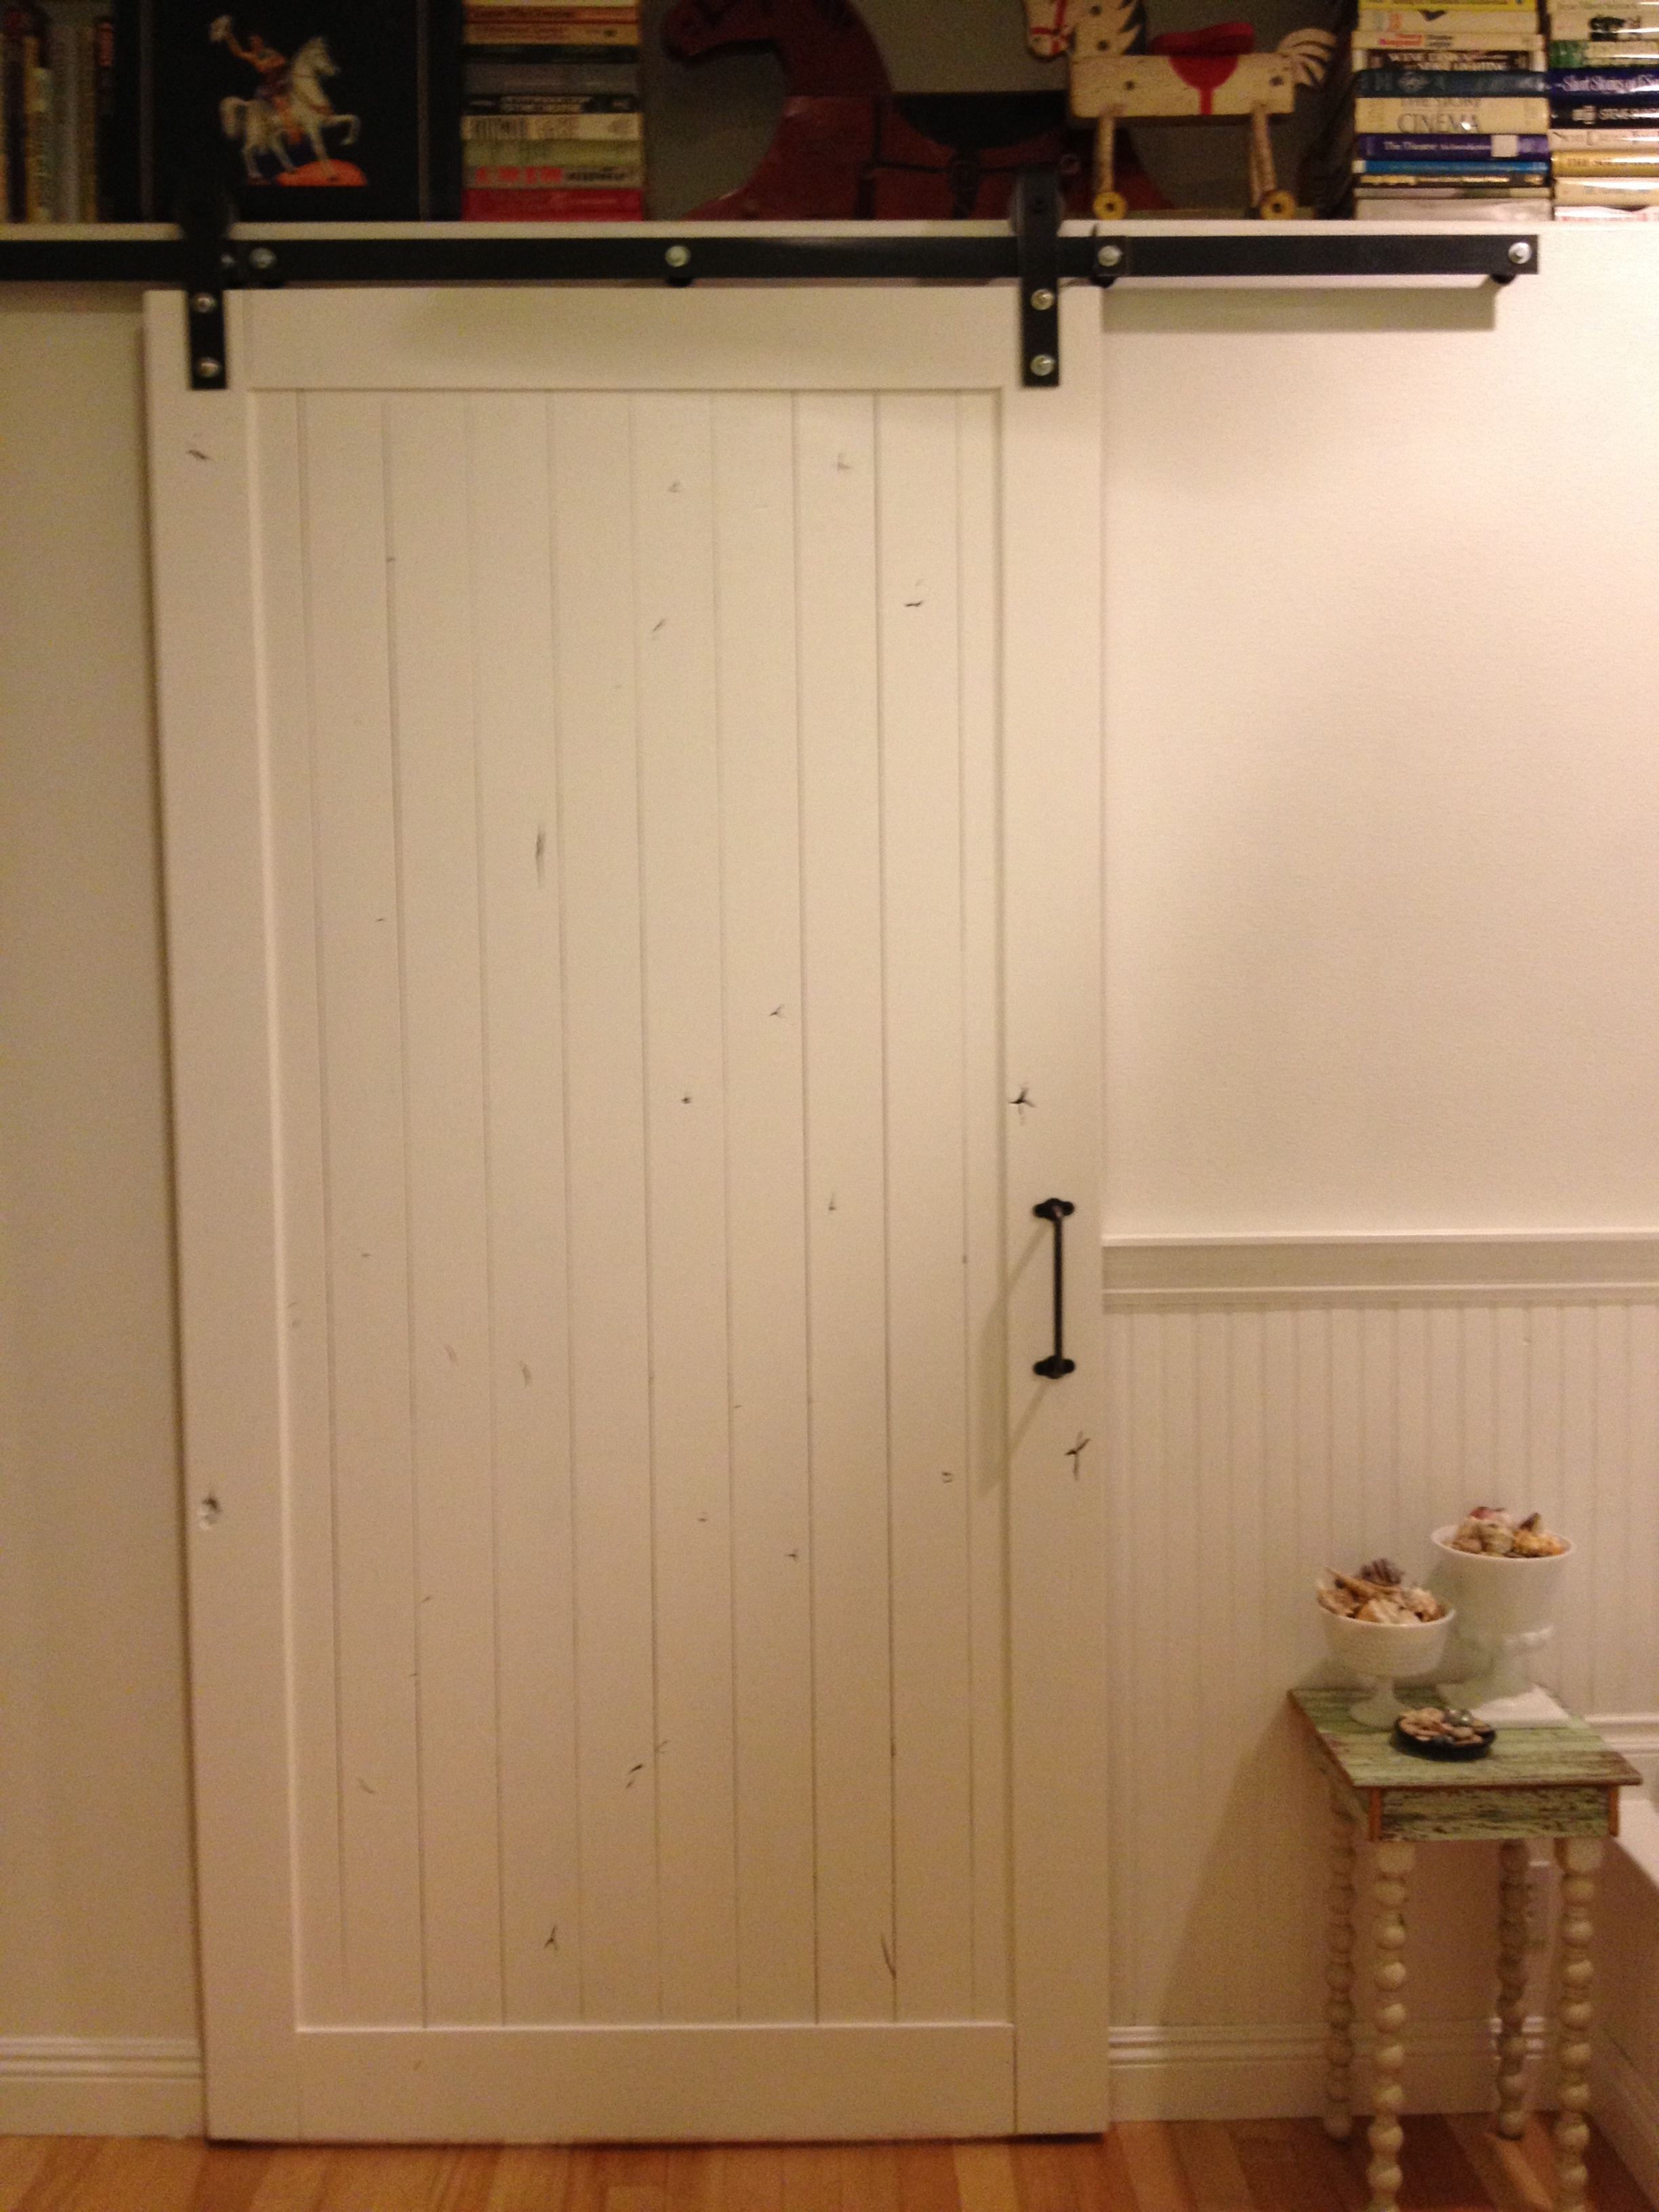 Diy Guess Who Installed Her Own Sliding Barn Door Obsessive Hobbyist